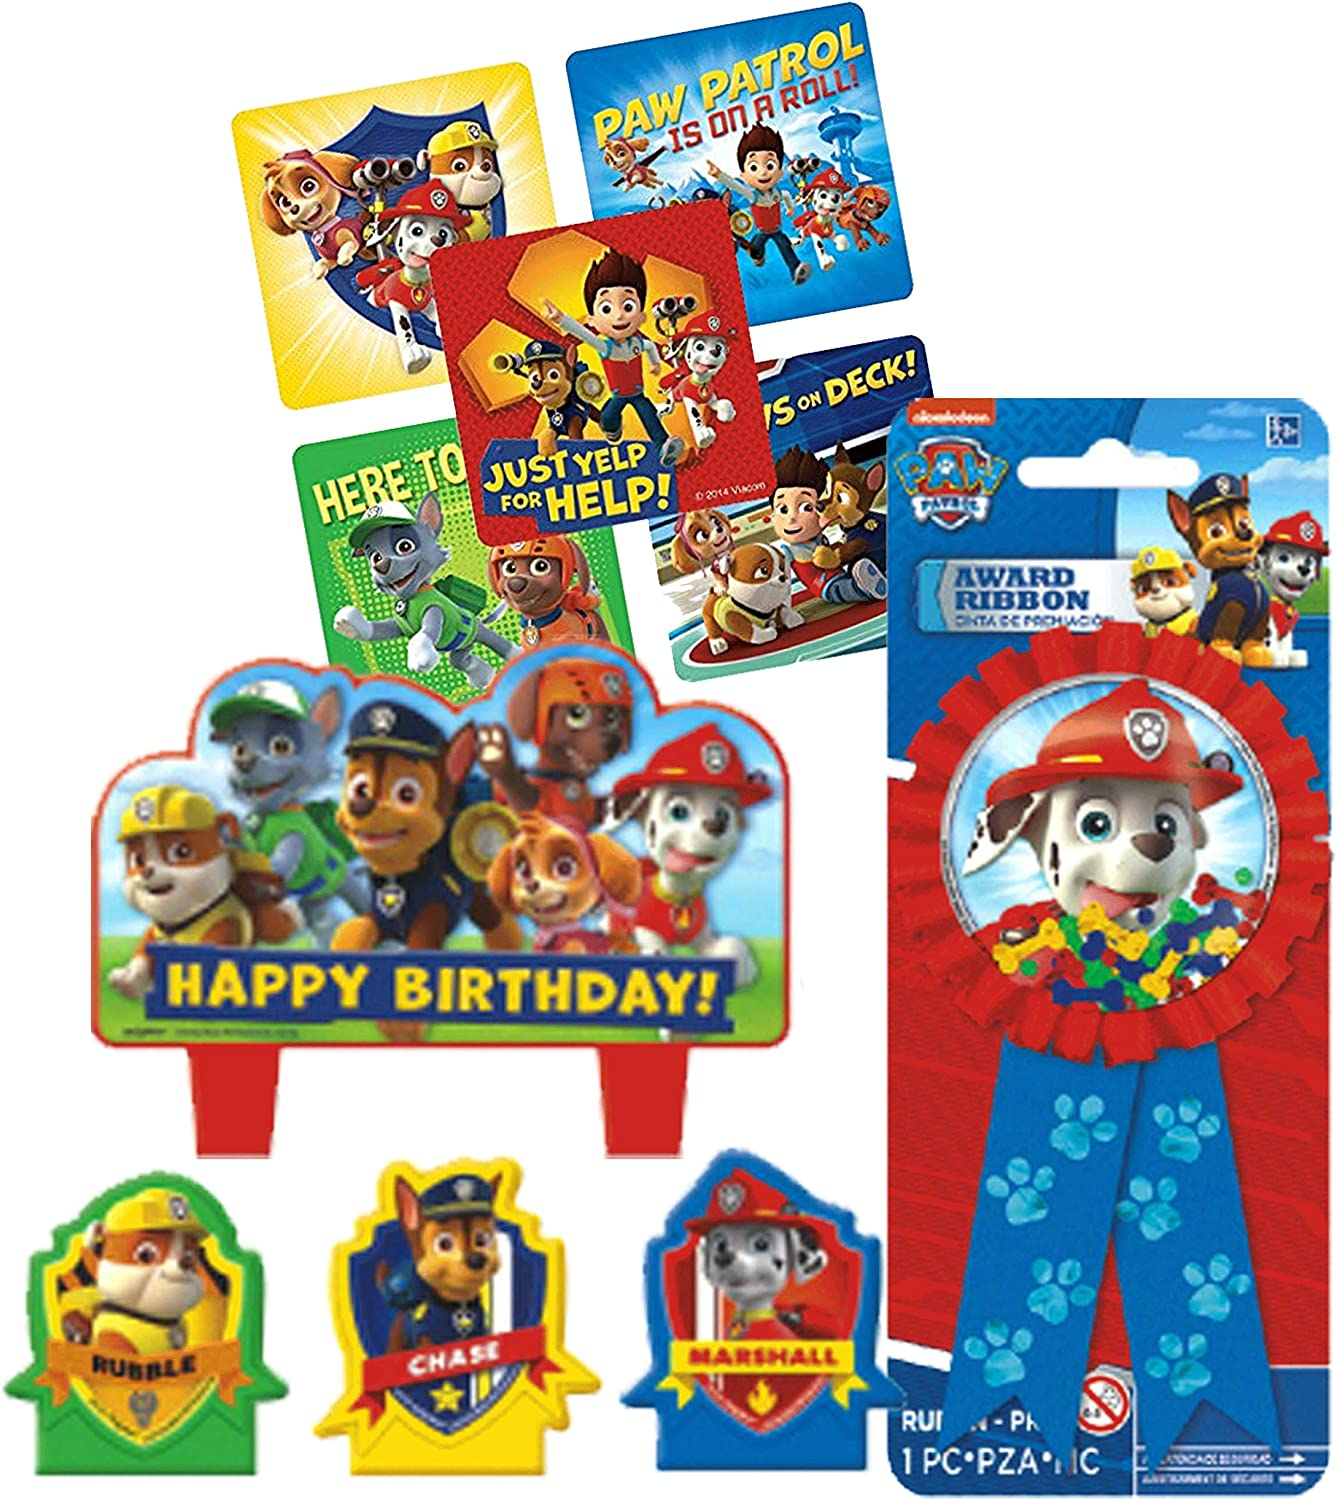 PAW PATROL GUEST OF HONOR RIBBON ~ Birthday Party Supplies Favors Award Confetti